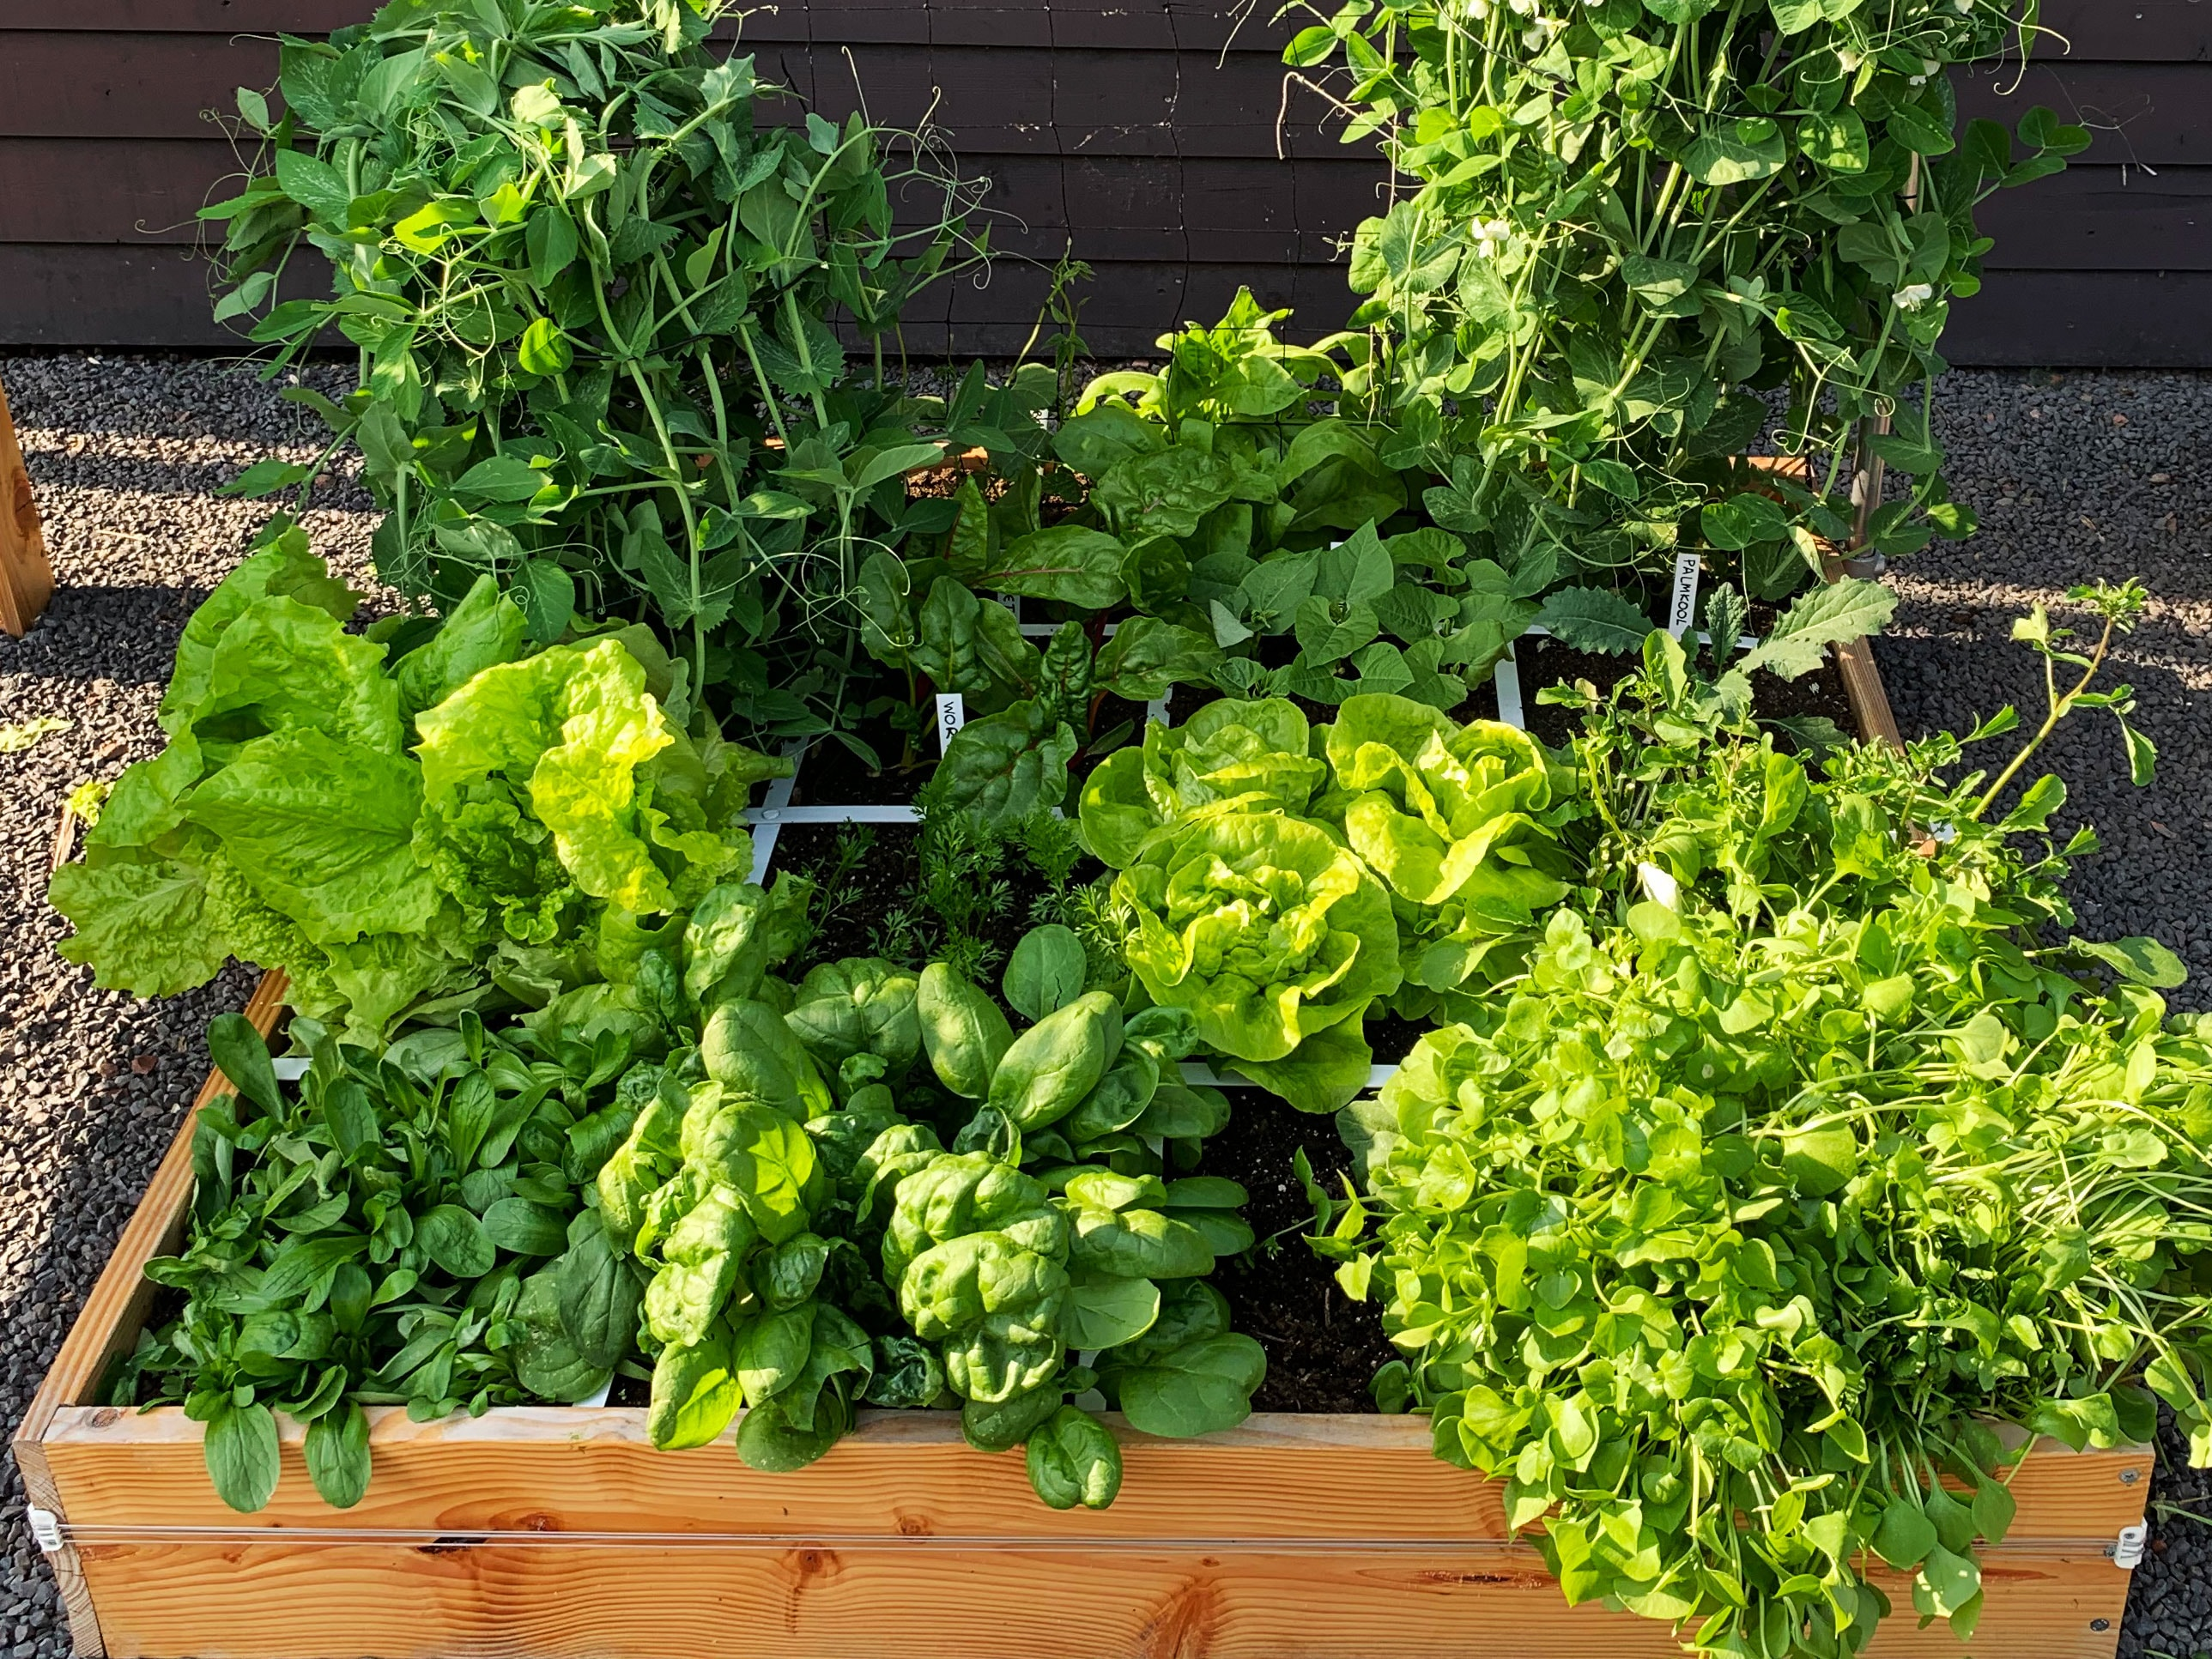 A full planter overflowing with vegetables